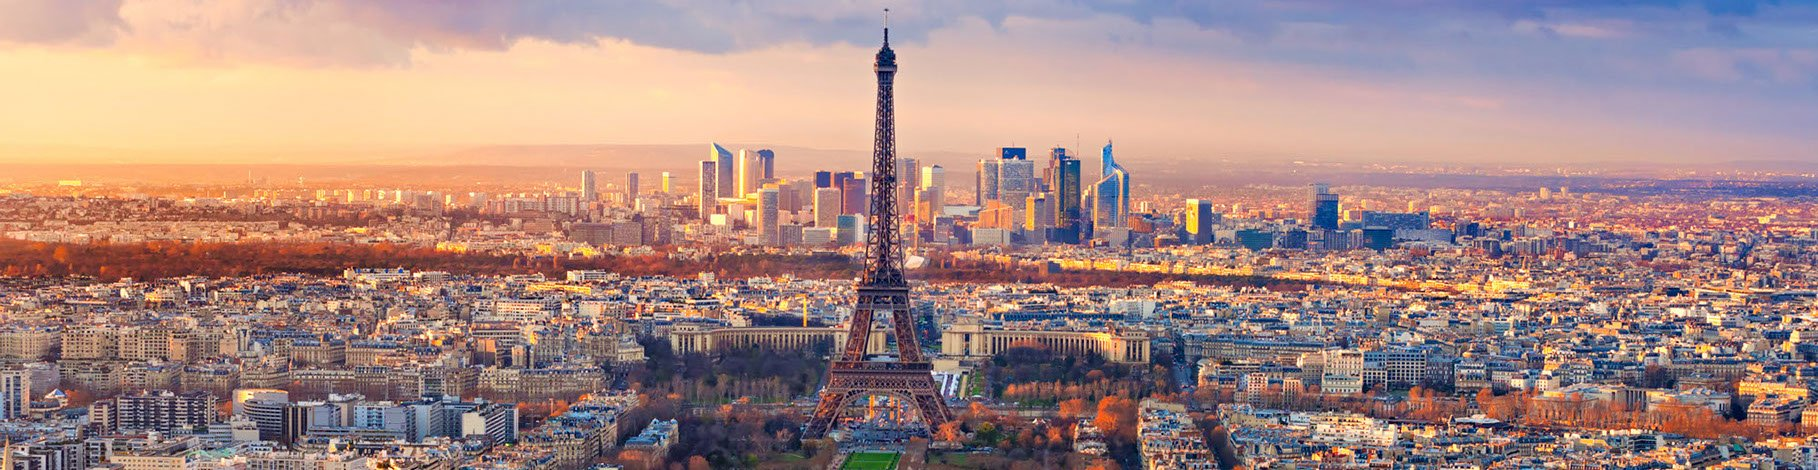 removals to france from uk removals to paris or anywhere in france